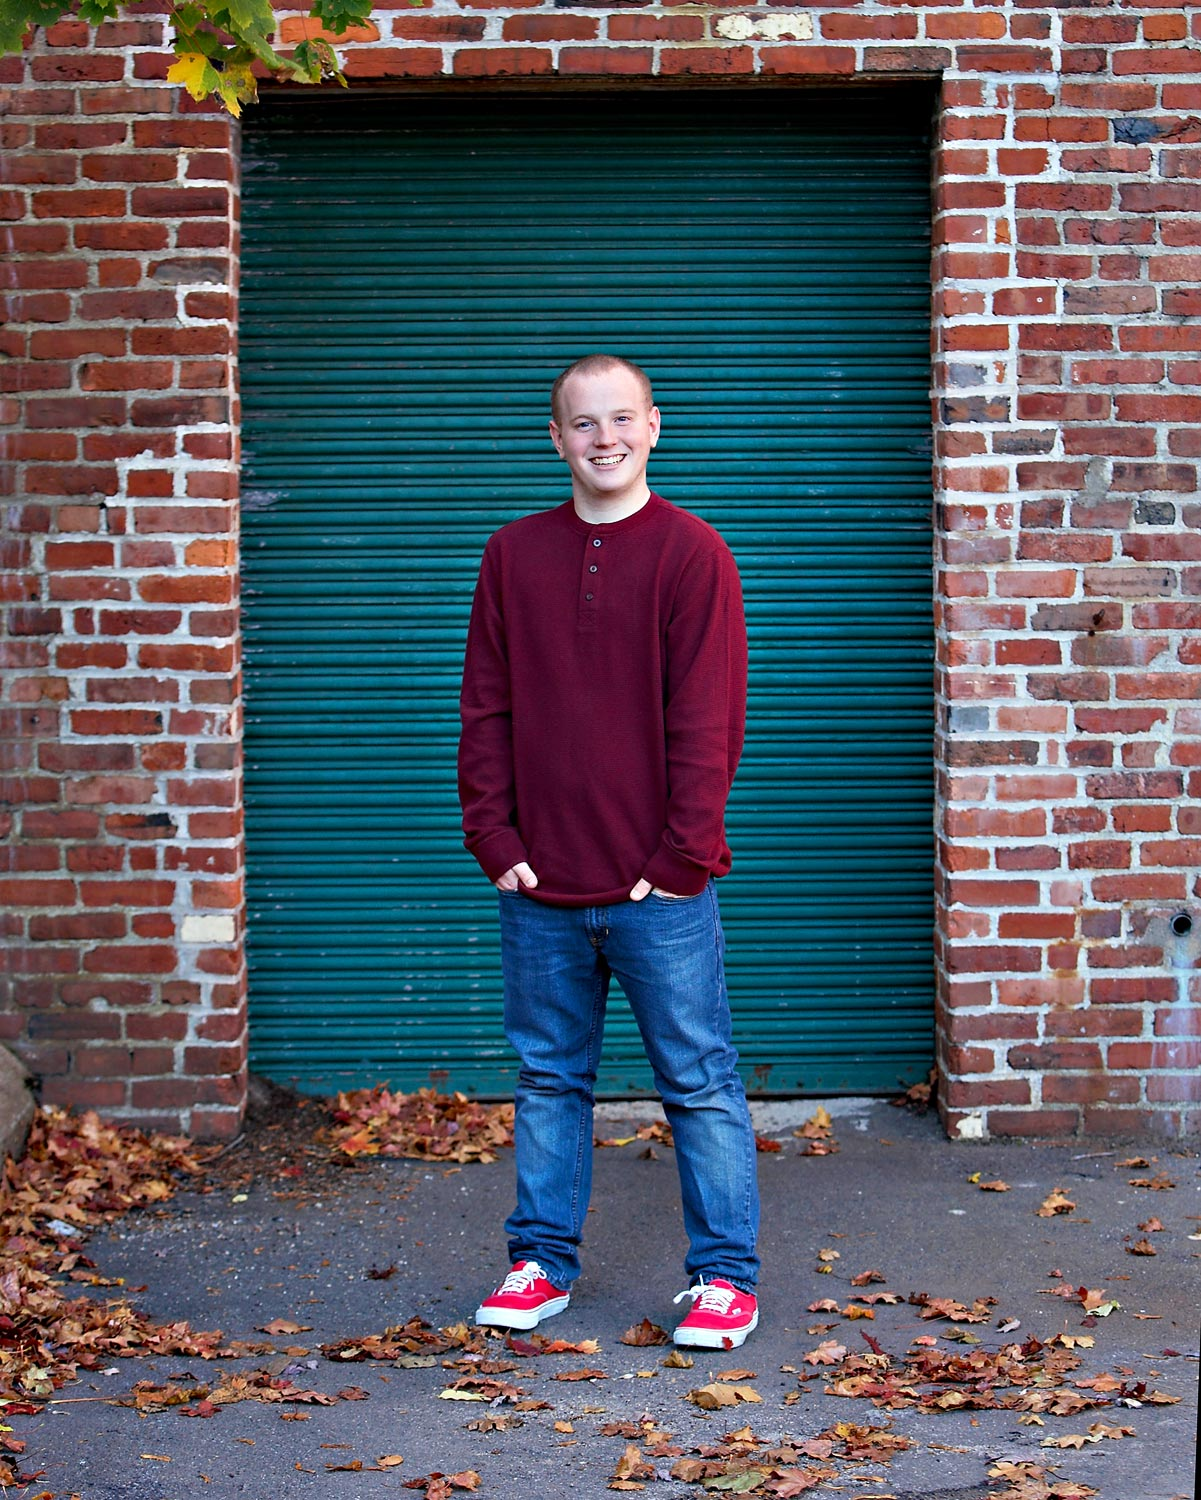 jimmy-highschool-senior-boy-quincy-massachusetts-urban-fall-nicole-chaput-photography-001.jpg